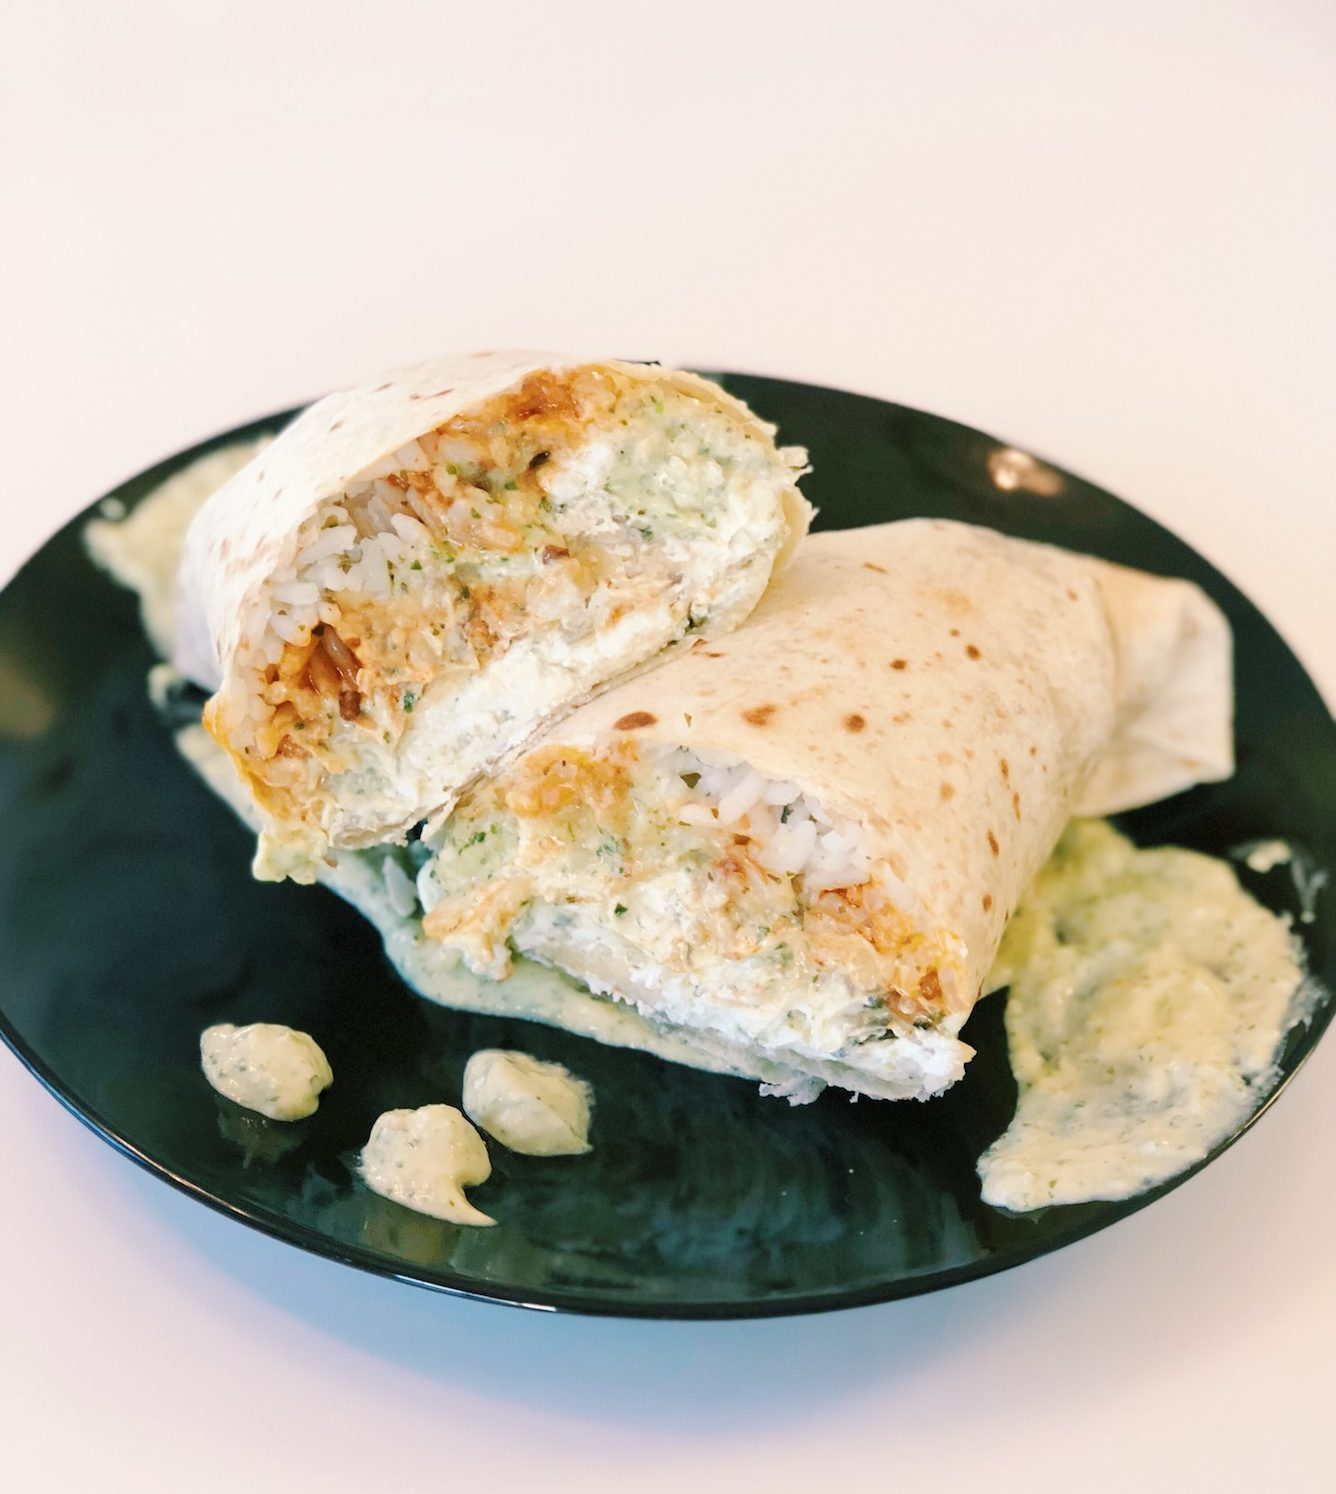 Tempeh chipotle and goat cheese wrap